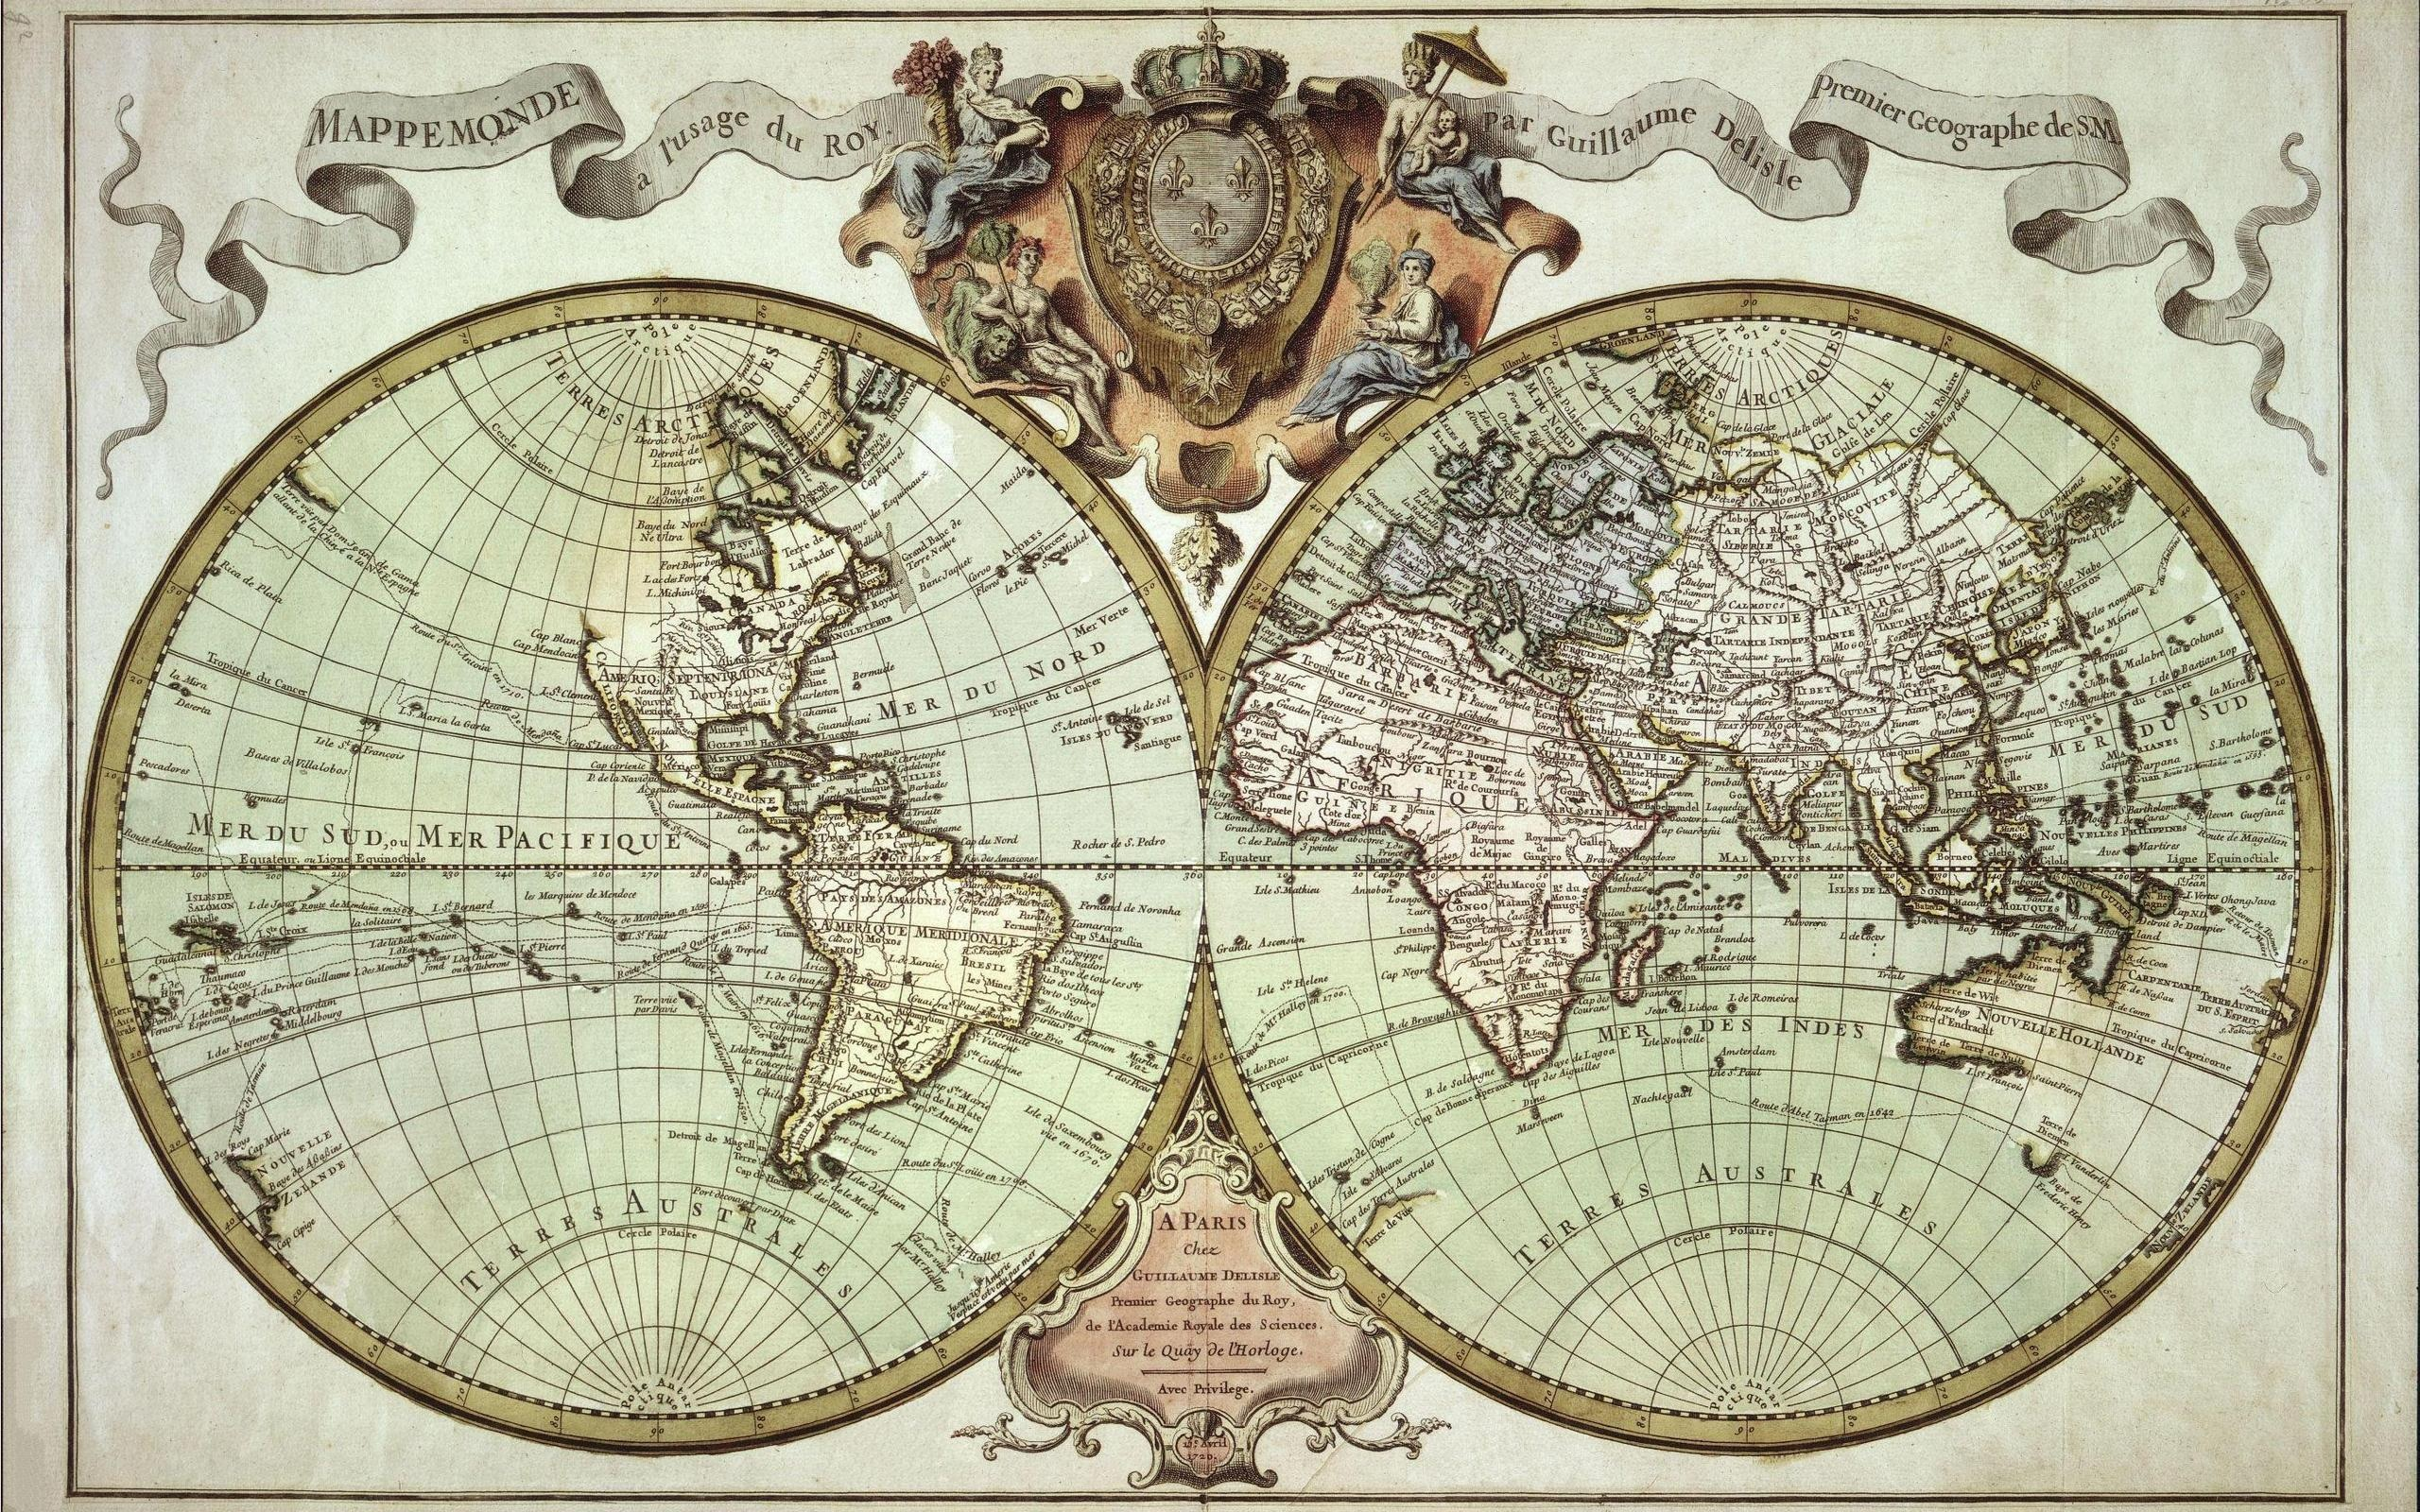 Old world map wallpaper wallpapersafari published december 1 2012 at 2560 1600 in letter of intent next 2560x1600 gumiabroncs Images